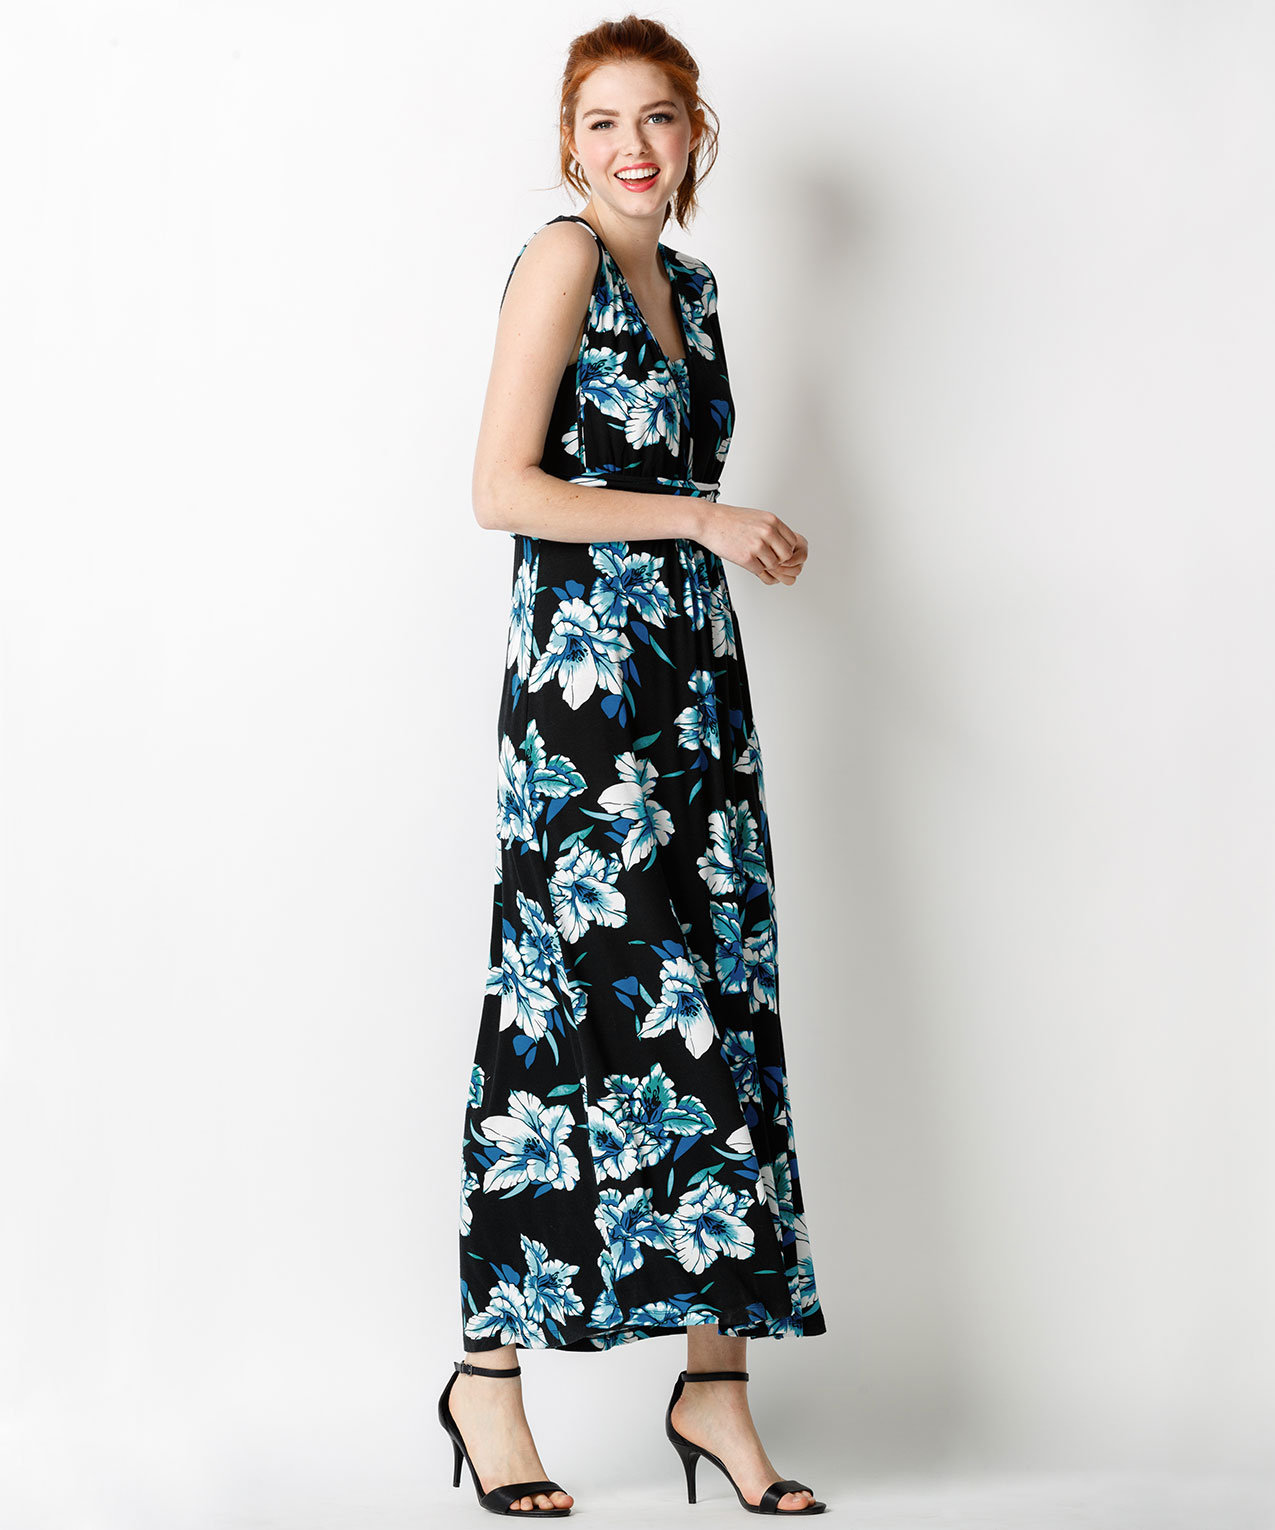 teal dress - up to 70% off. Well, darn. This item just sold out. Select notify me & we'll tell you when it's back in stock.